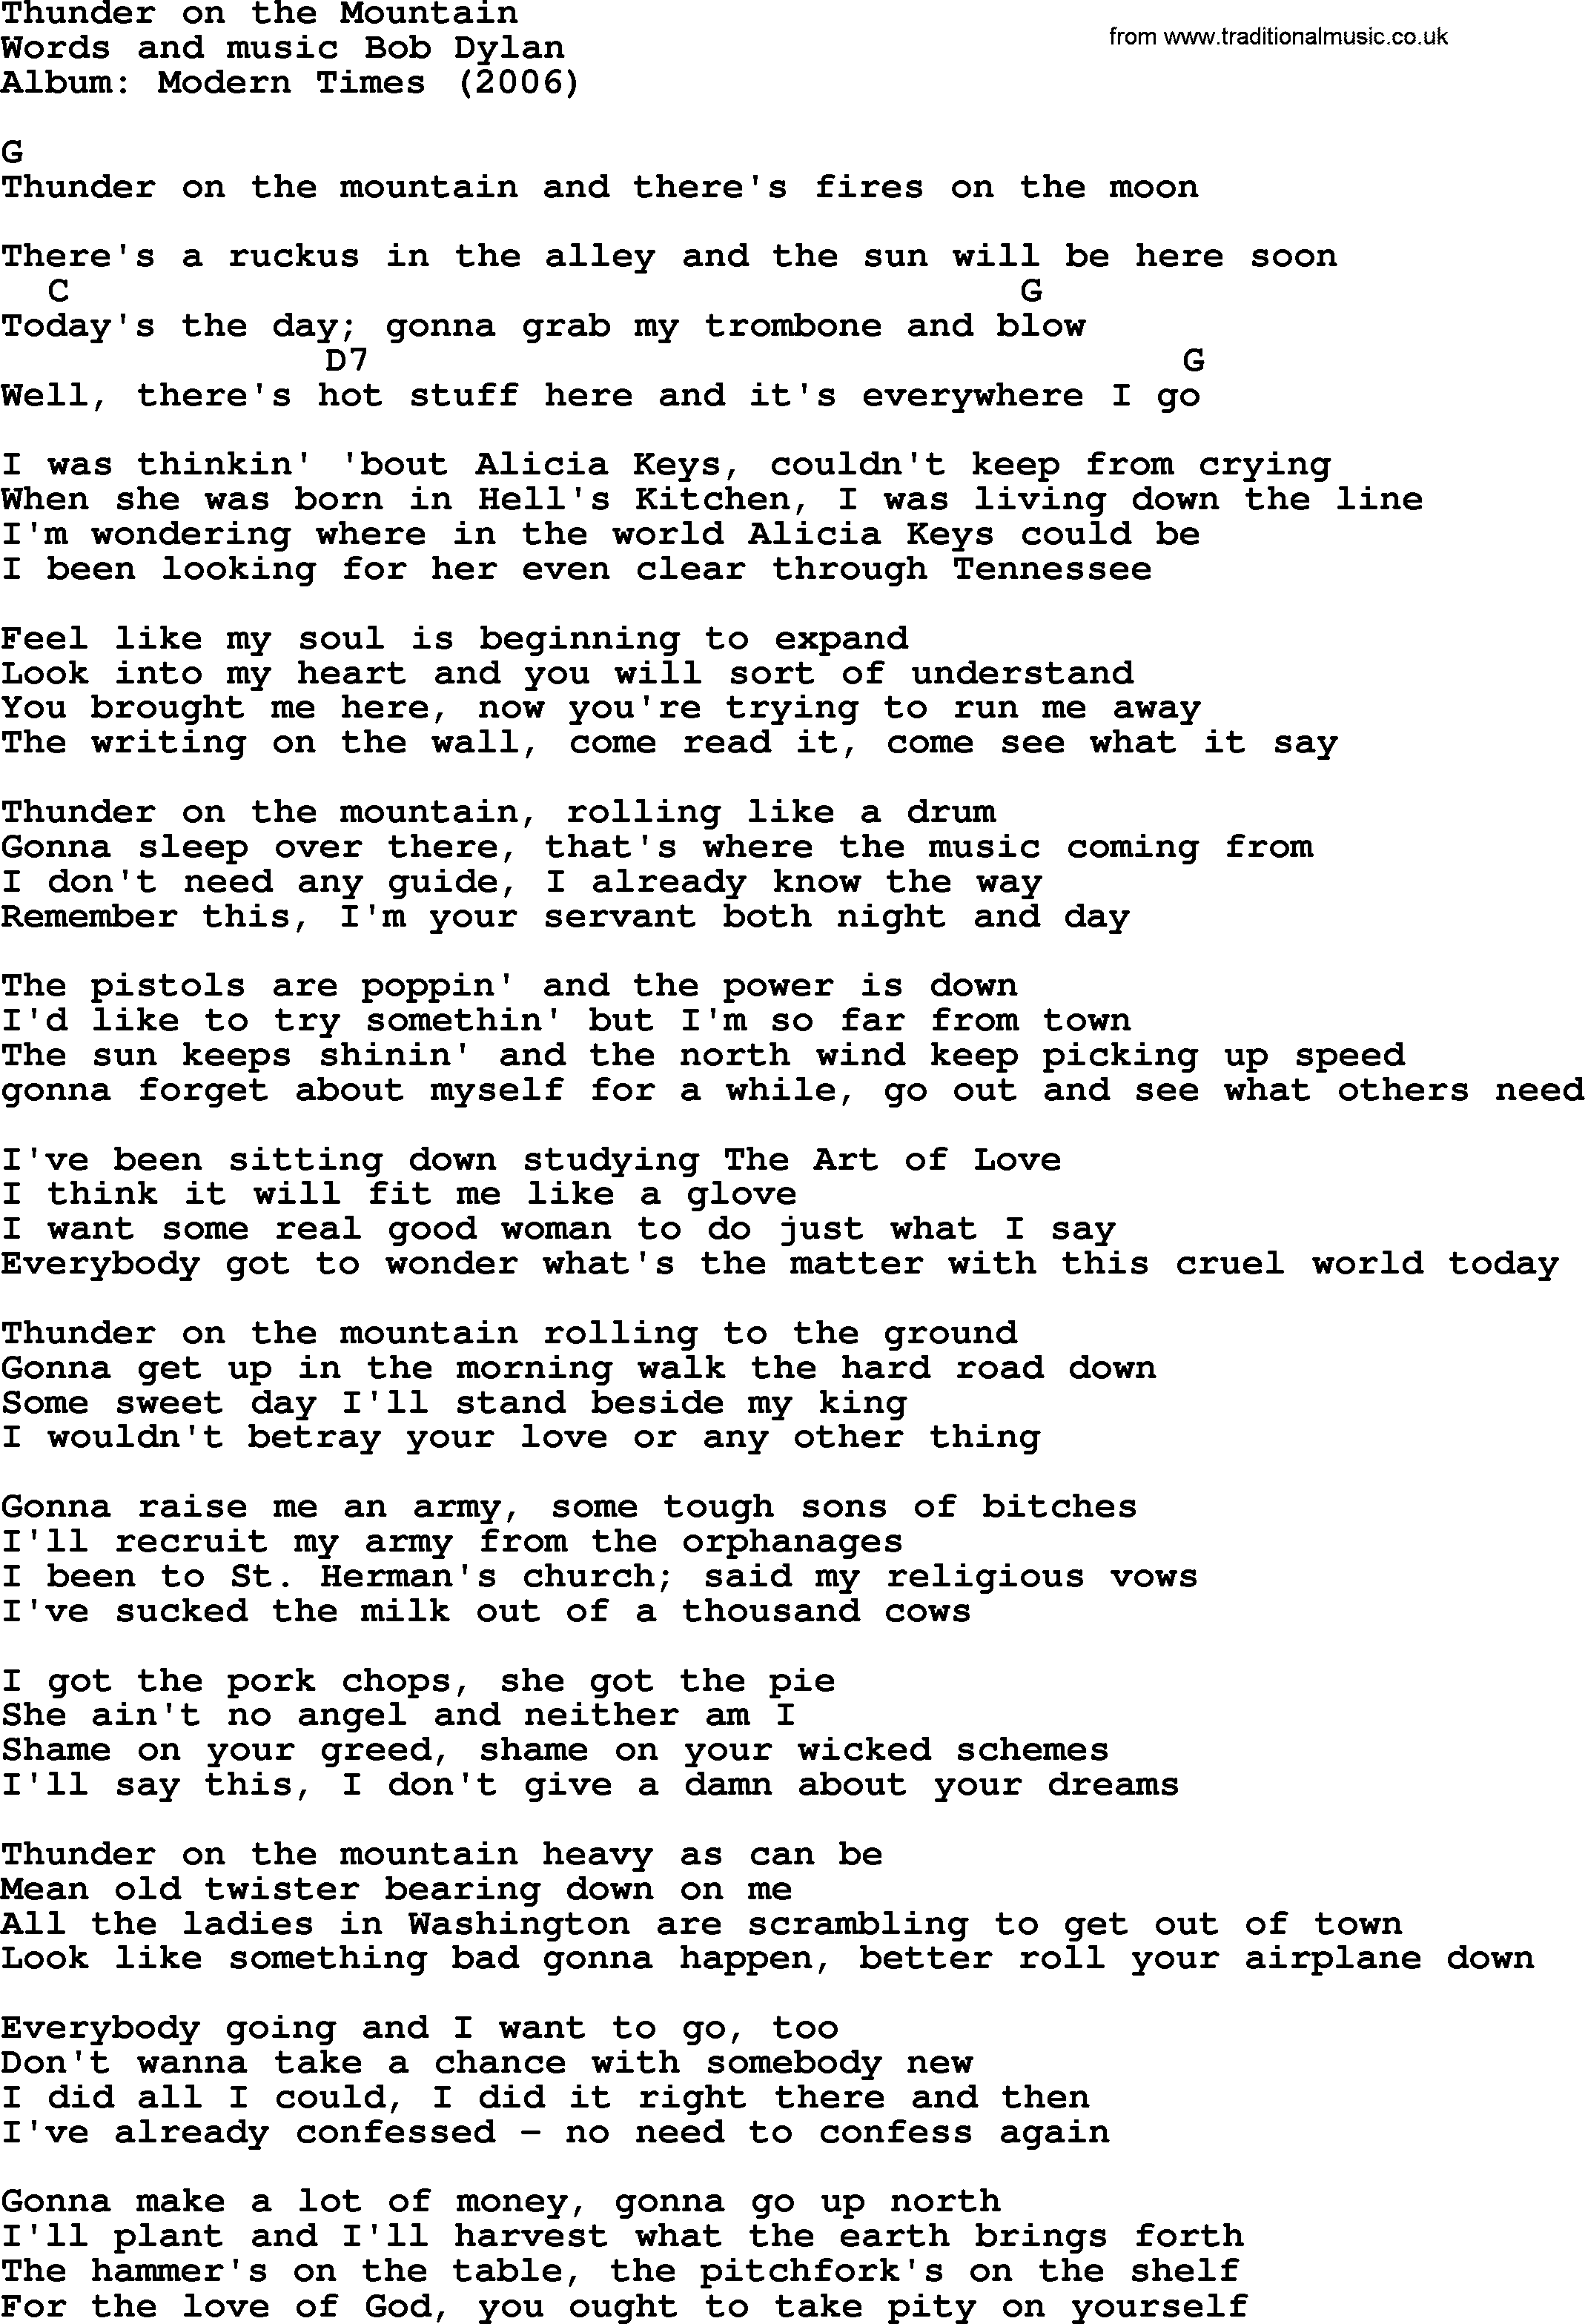 Bob Dylan Song Thunder On The Mountain Lyrics And Chords